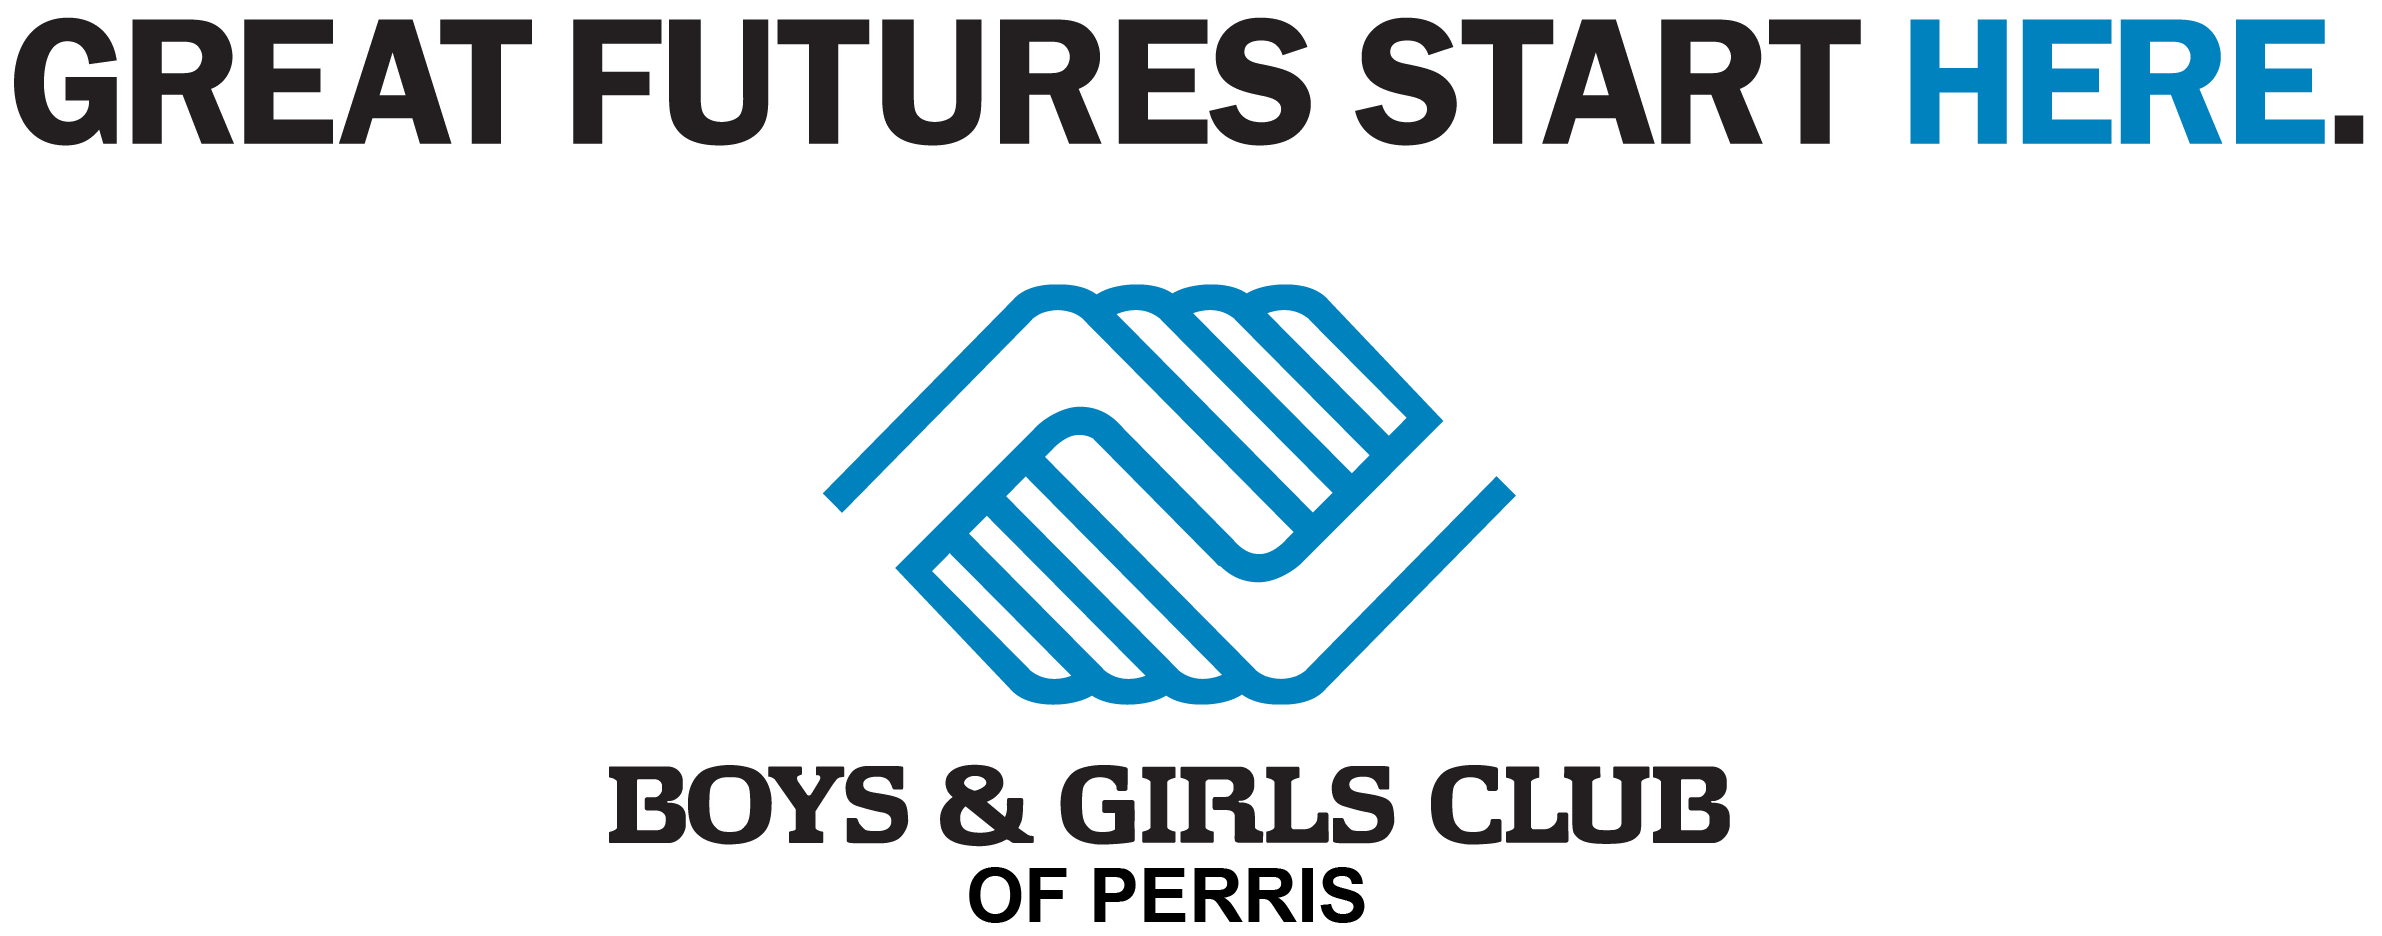 Join The Boys & Girls Club of Perris for $35.00